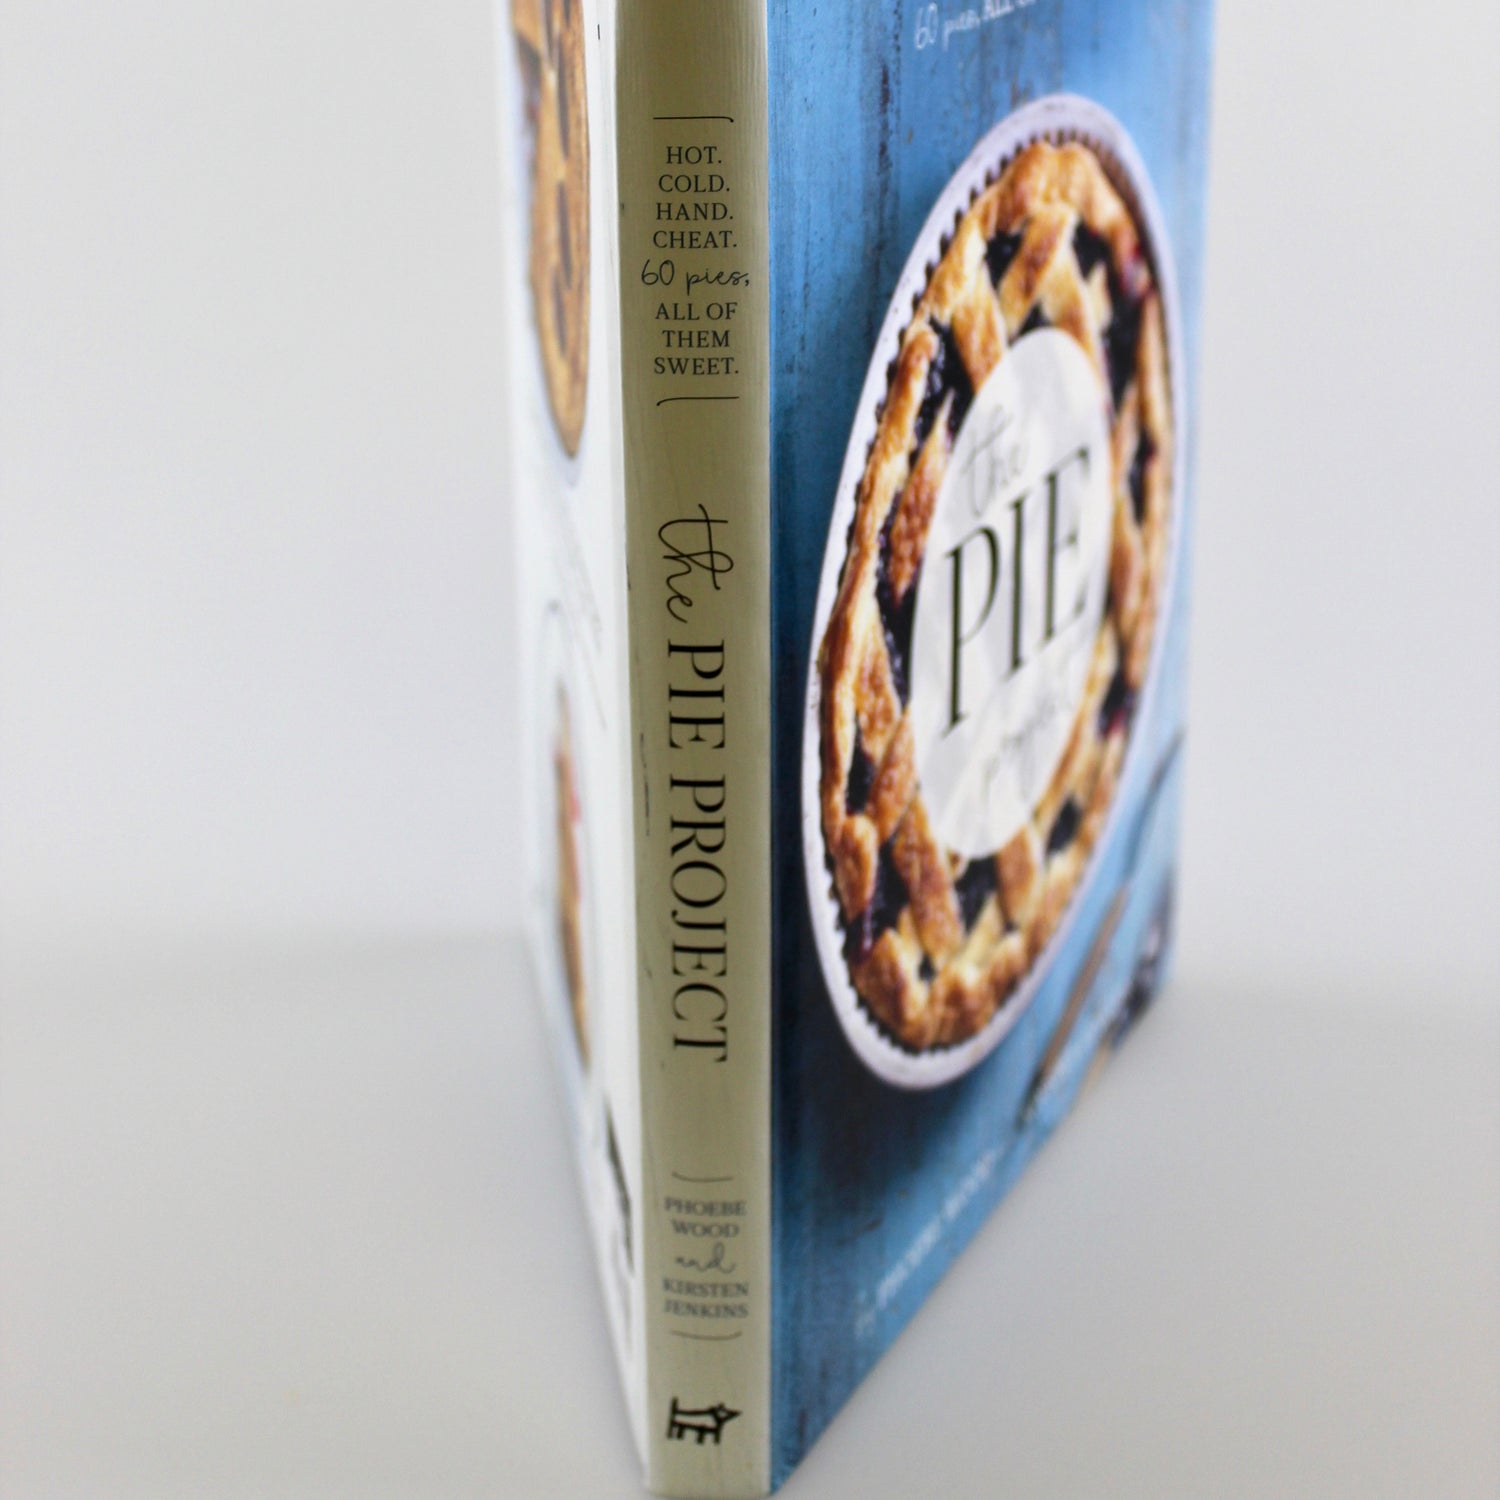 Hachette Pie Project